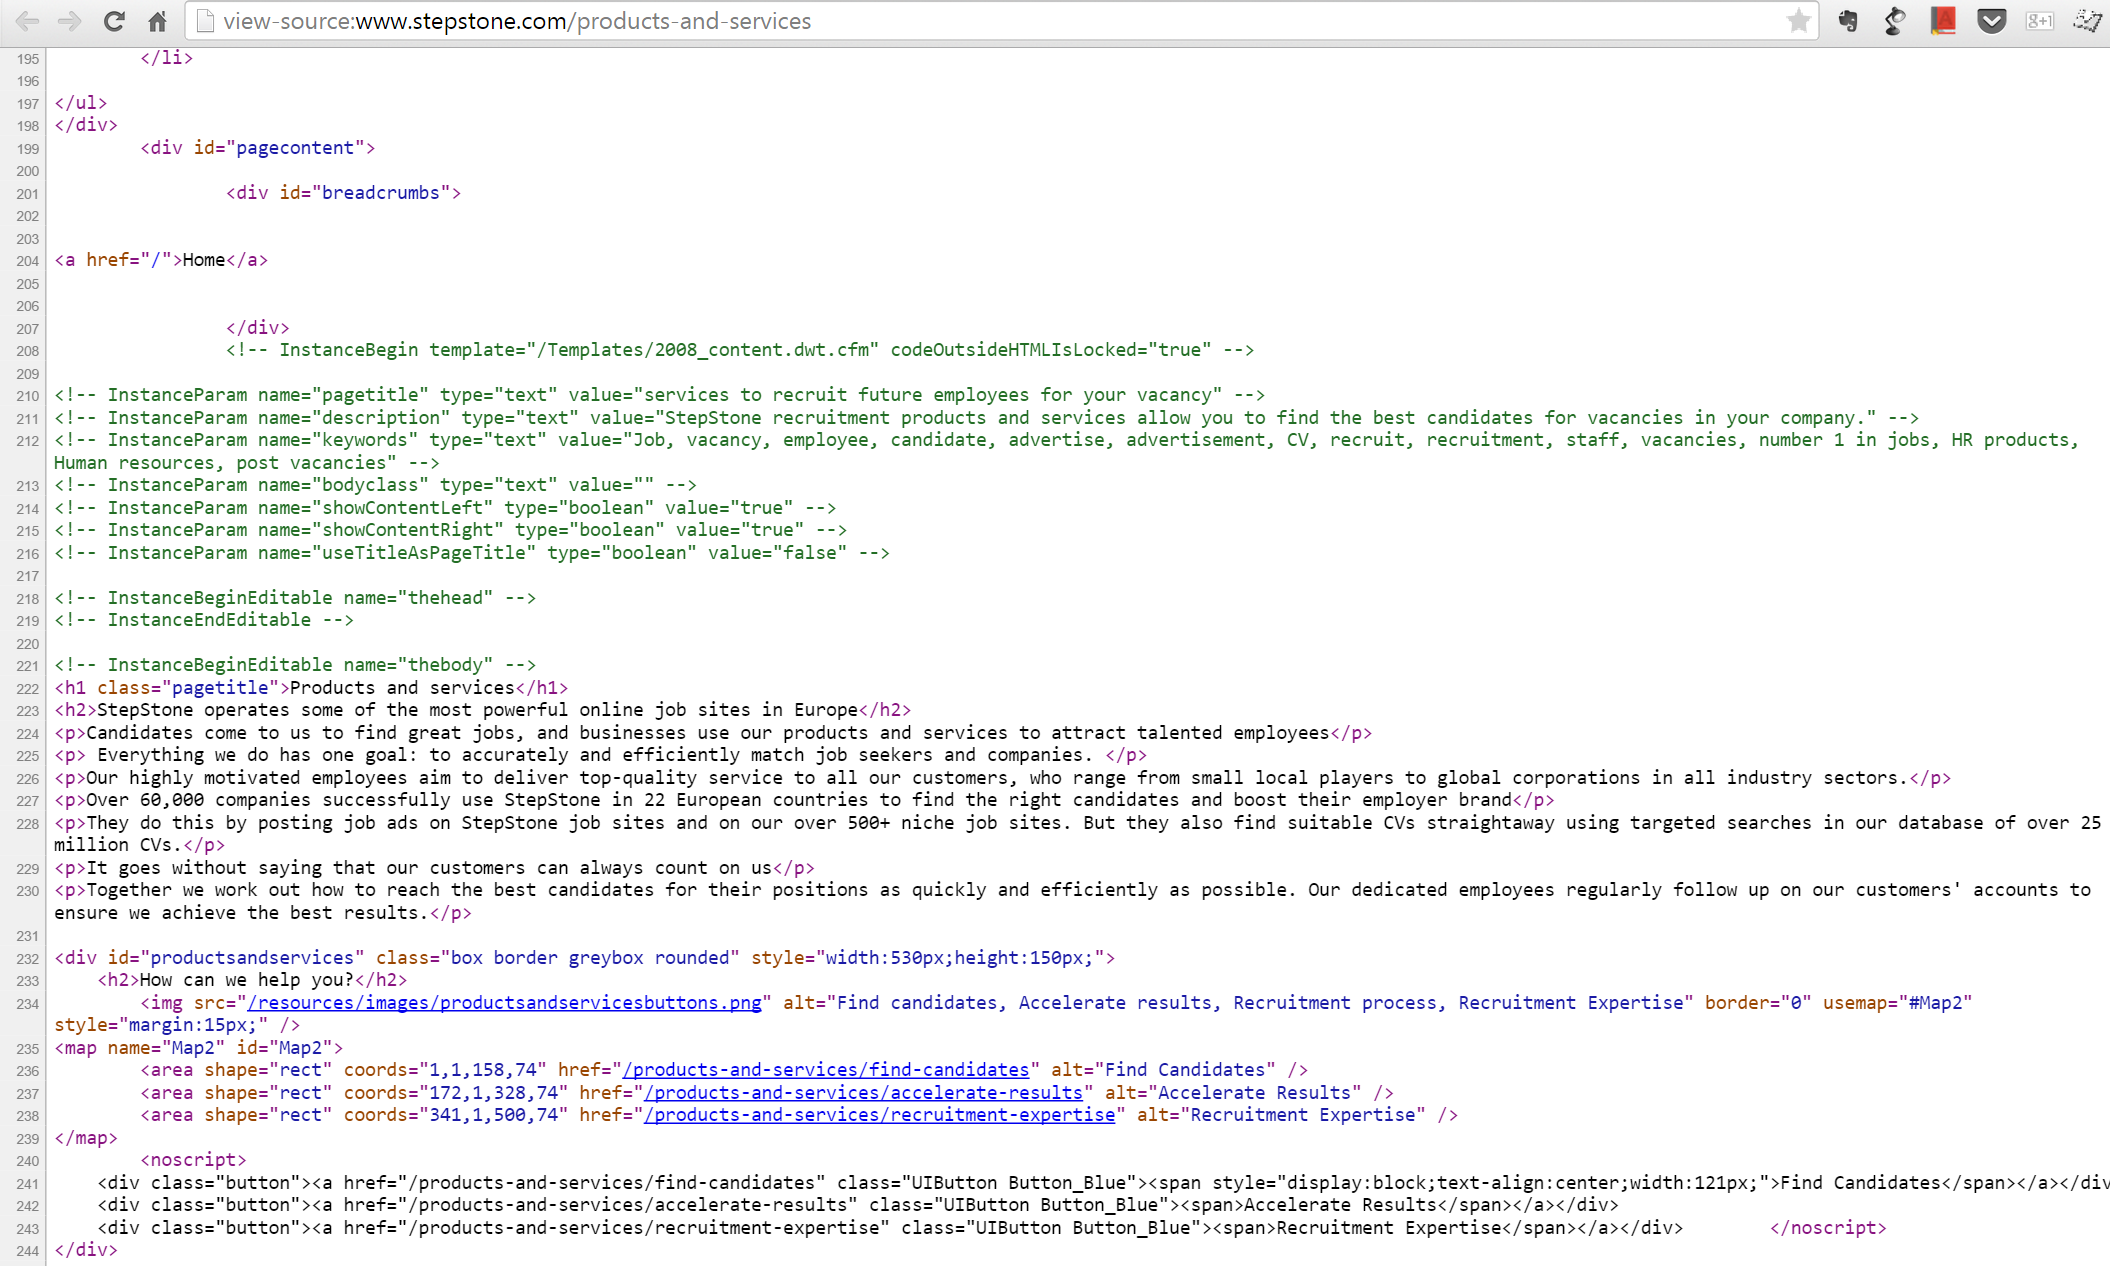 Stepstone.com Source code still containing the Dreamweaver template comments